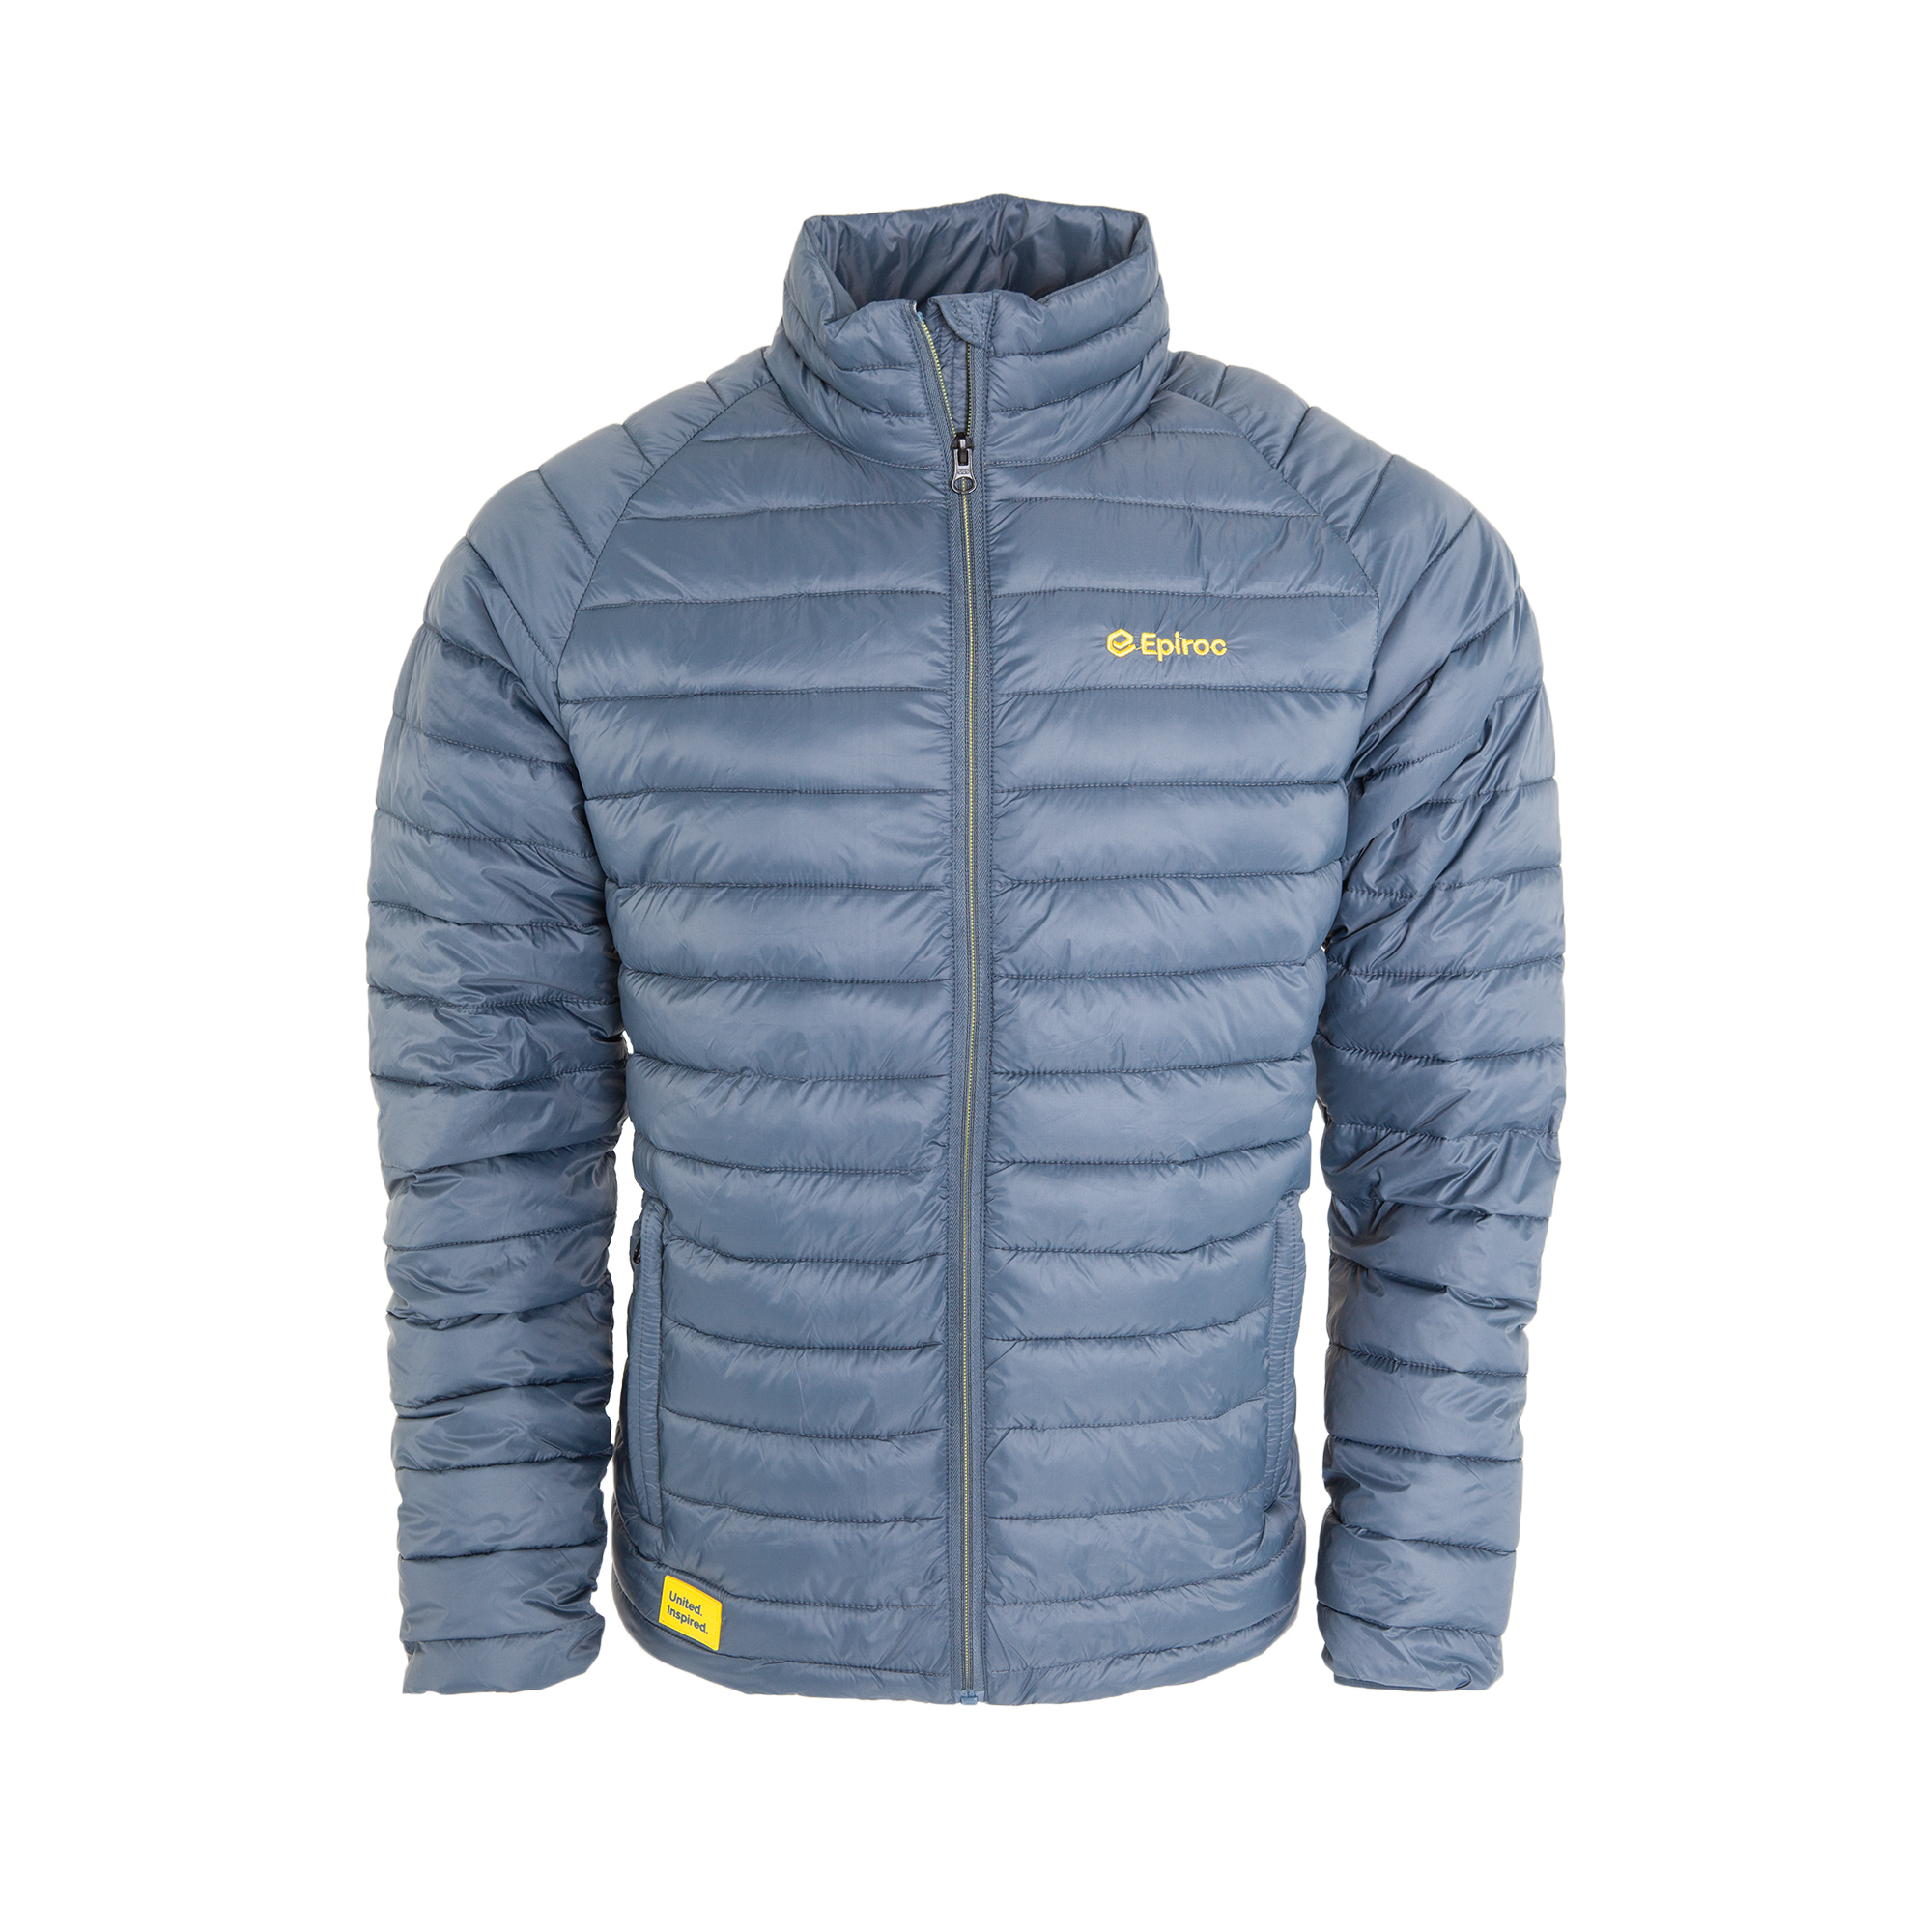 Nice light padded jacket. Wind and water repellent. Two side pockets with zipper.